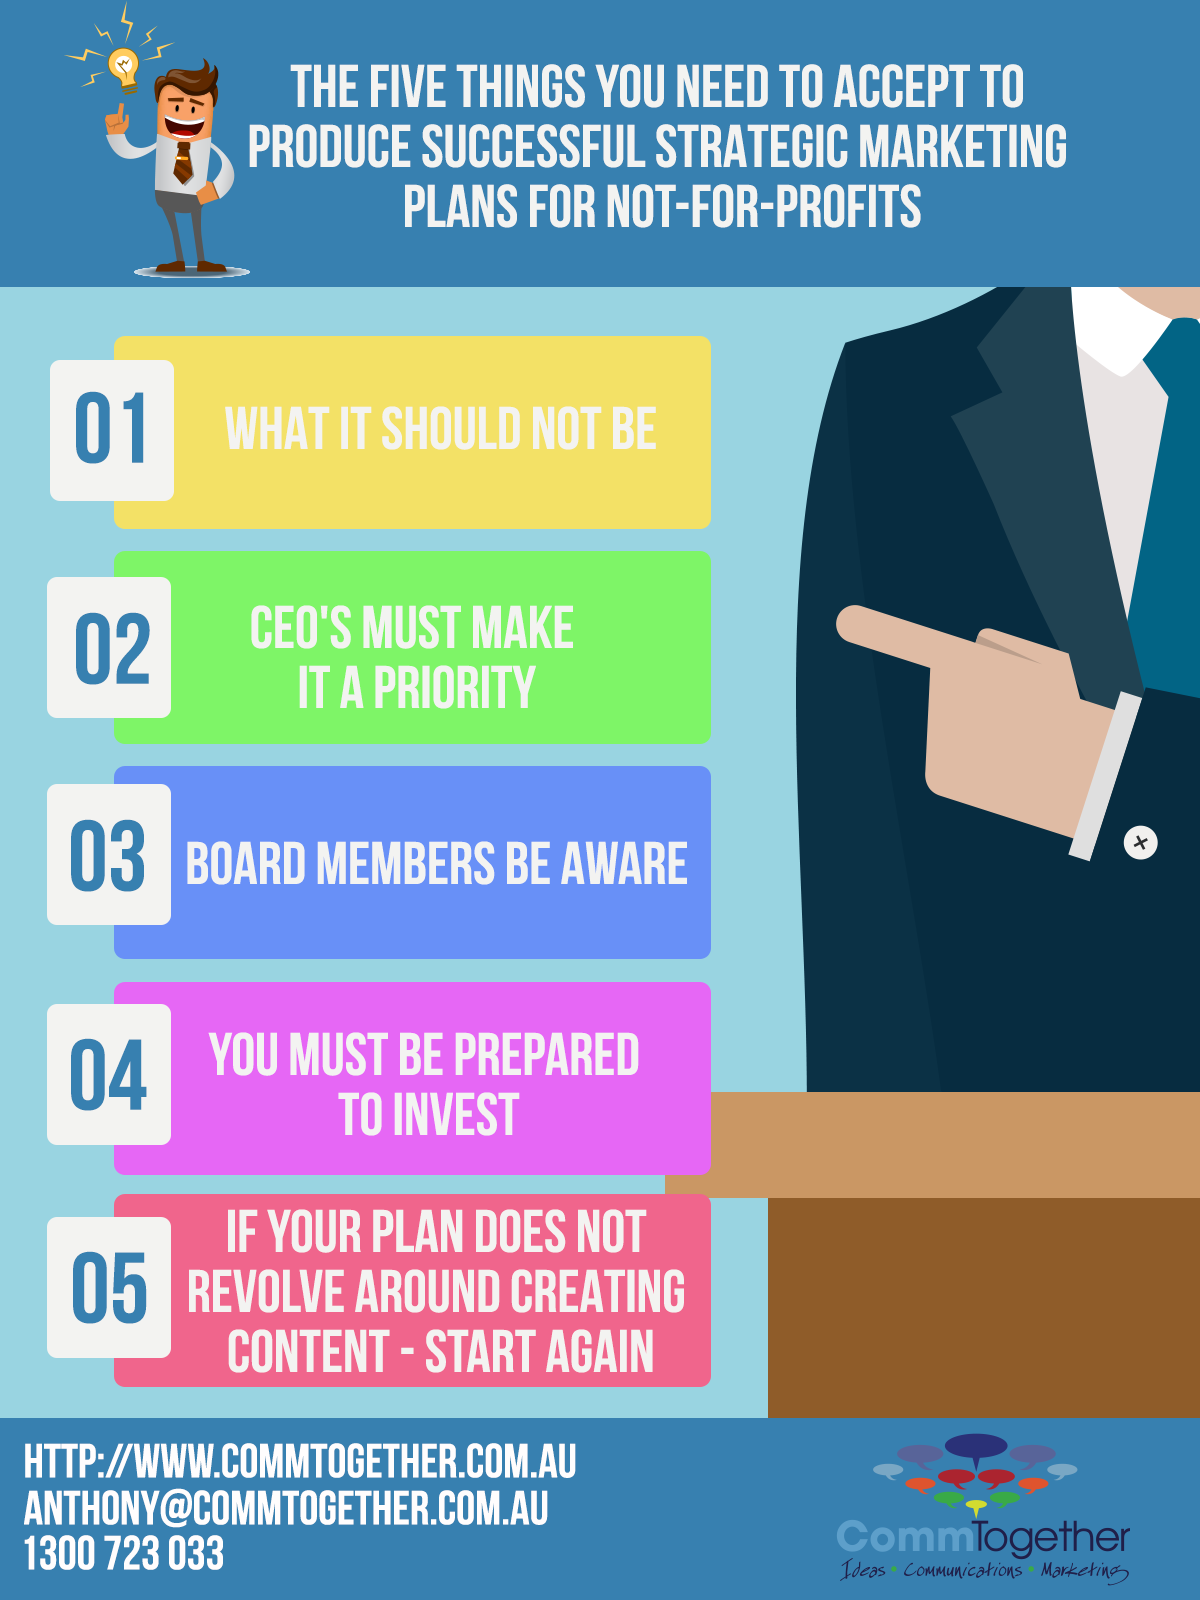 strategic-marketing-plans-for-not-for-profits-5-things.png